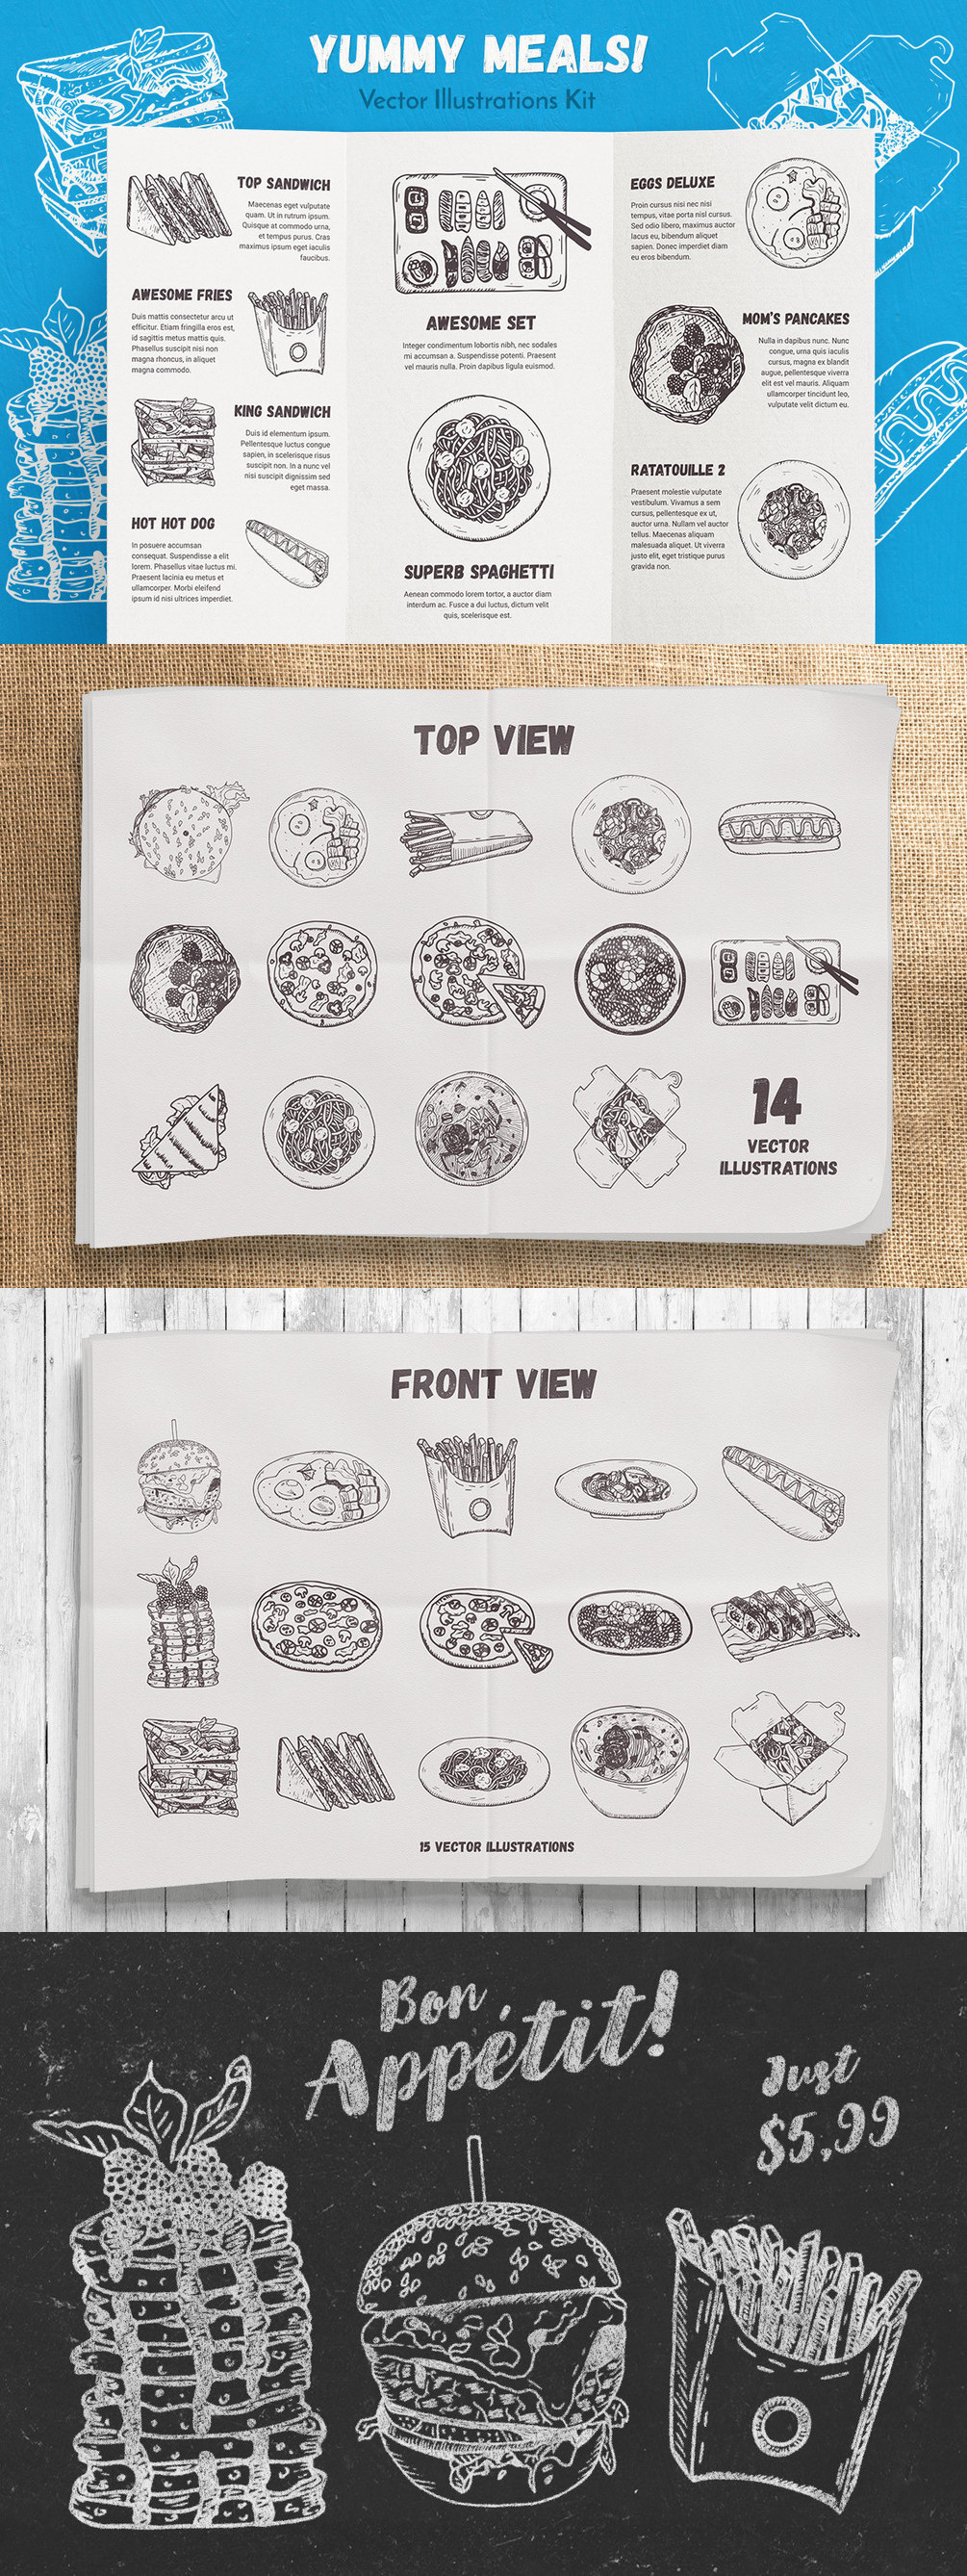 Yummy Meals Vector Set